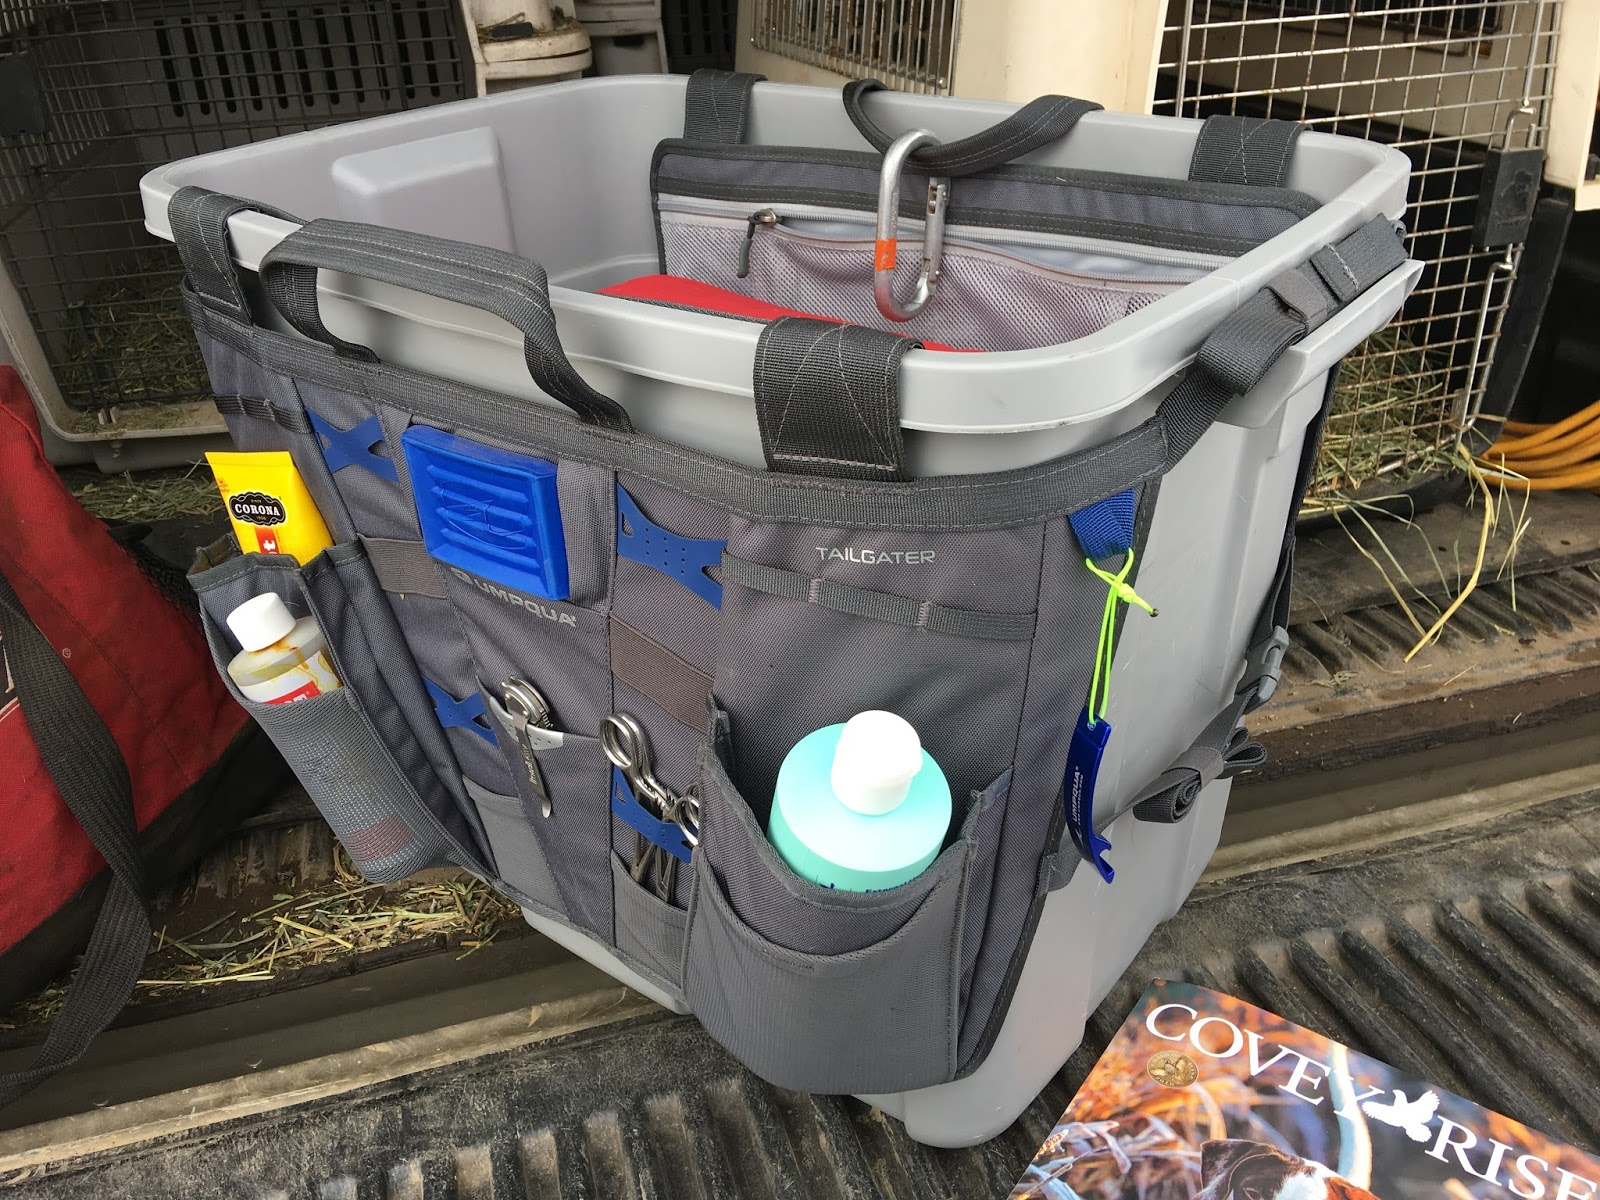 the tailgater is made by umpqua and fits around and inside a rubbermaid roughneck 18 gal container - Seecontainerhuser Wa